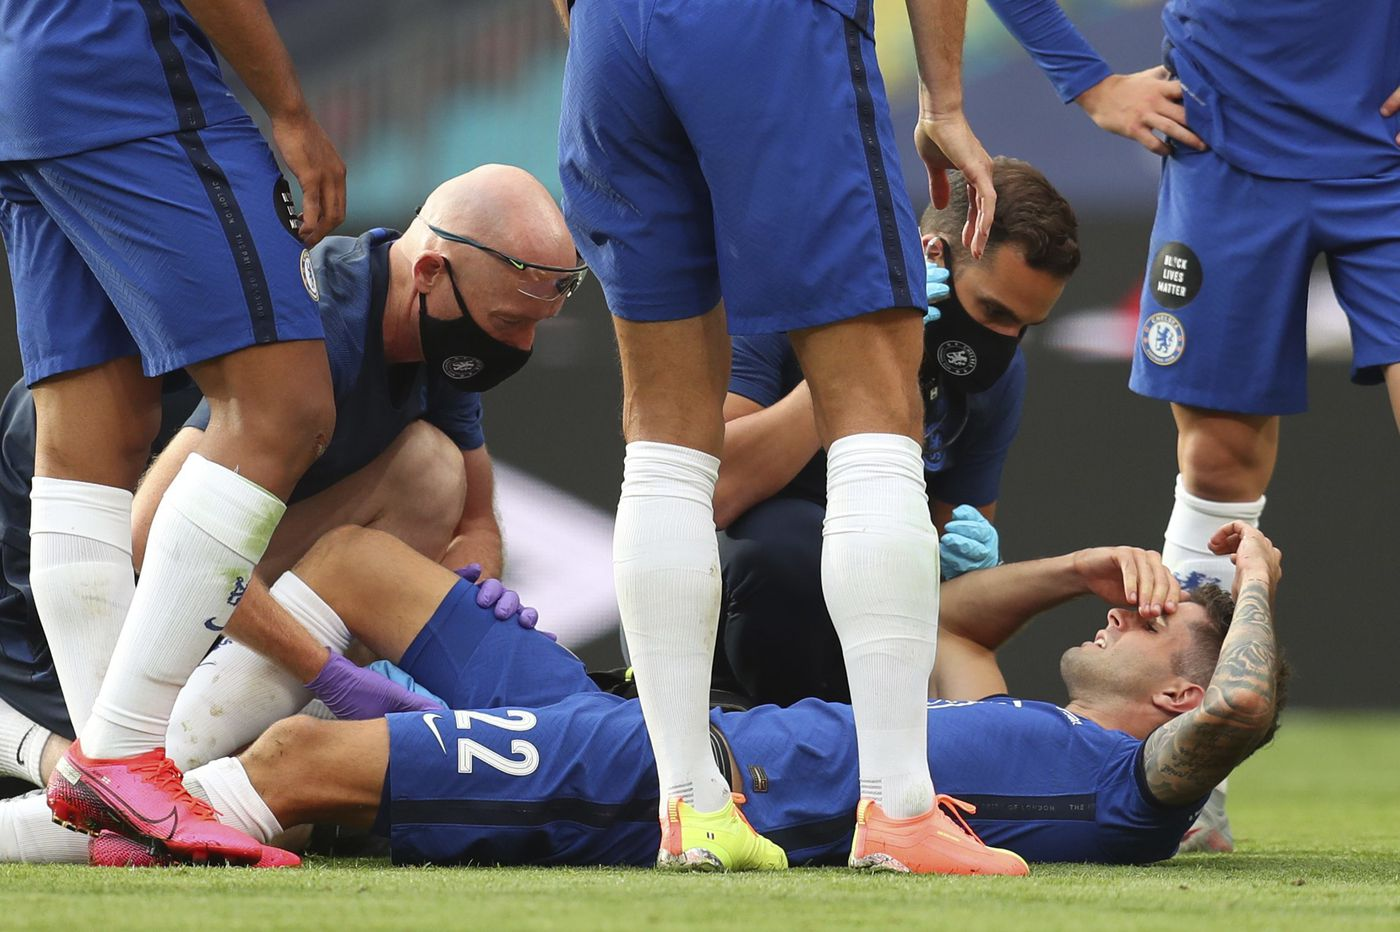 Christian Pulisic out 6 weeks with hamstring injury, could miss Premier League season's start